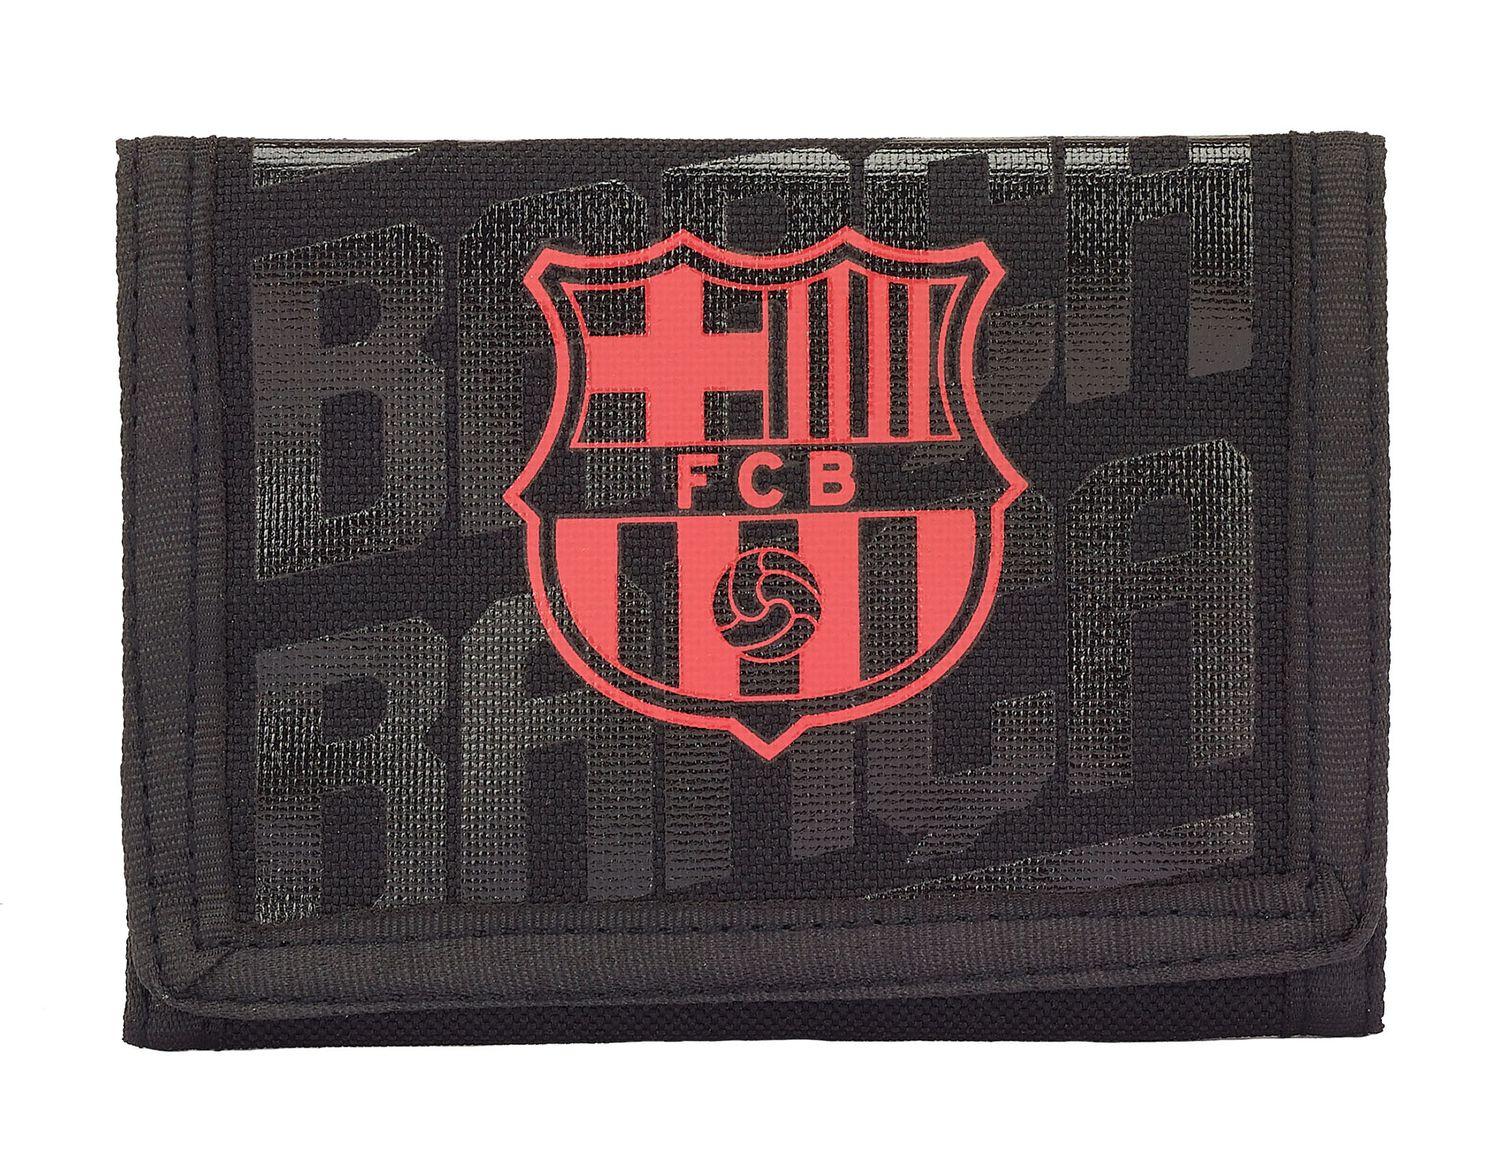 Wallet F.C. Barcelona Black Edition – image 1